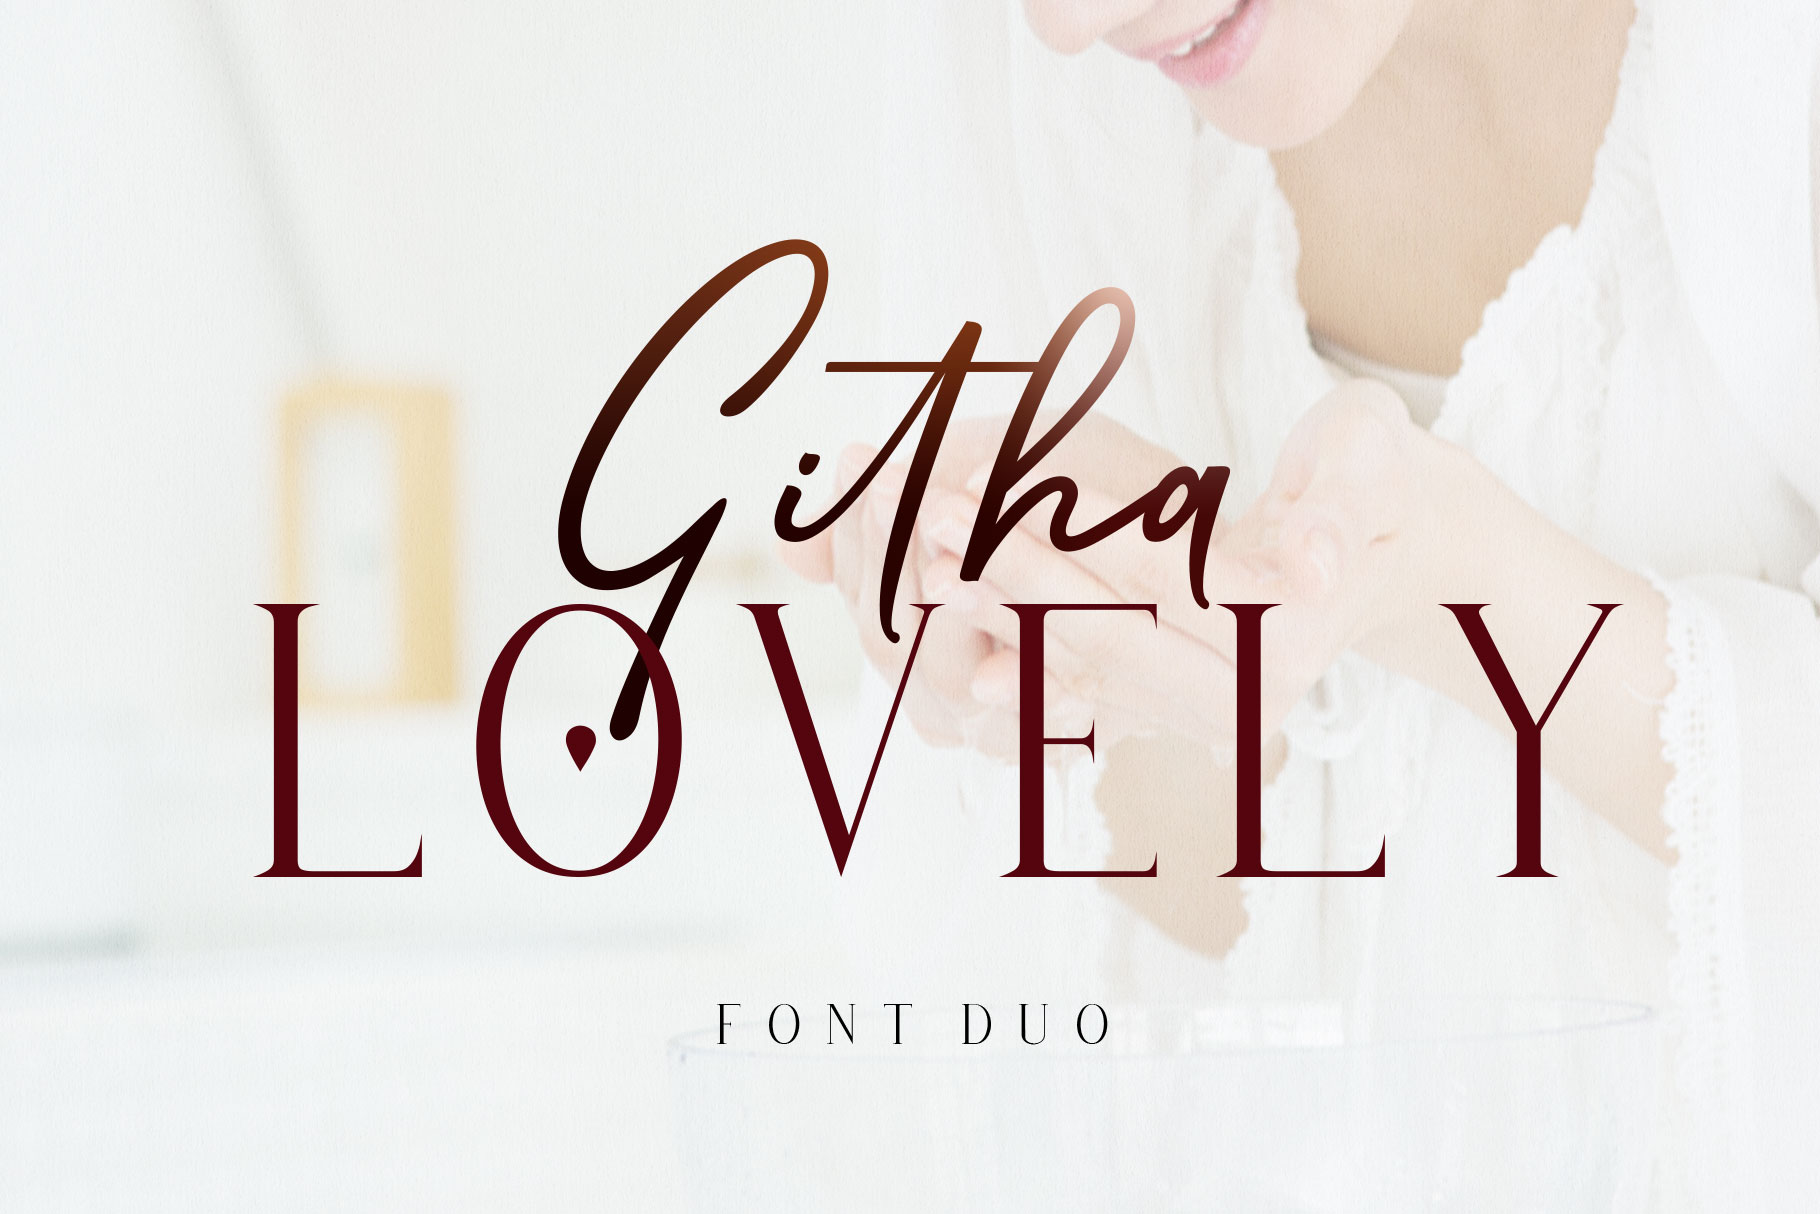 Githa Lovely Font Duo example image 1